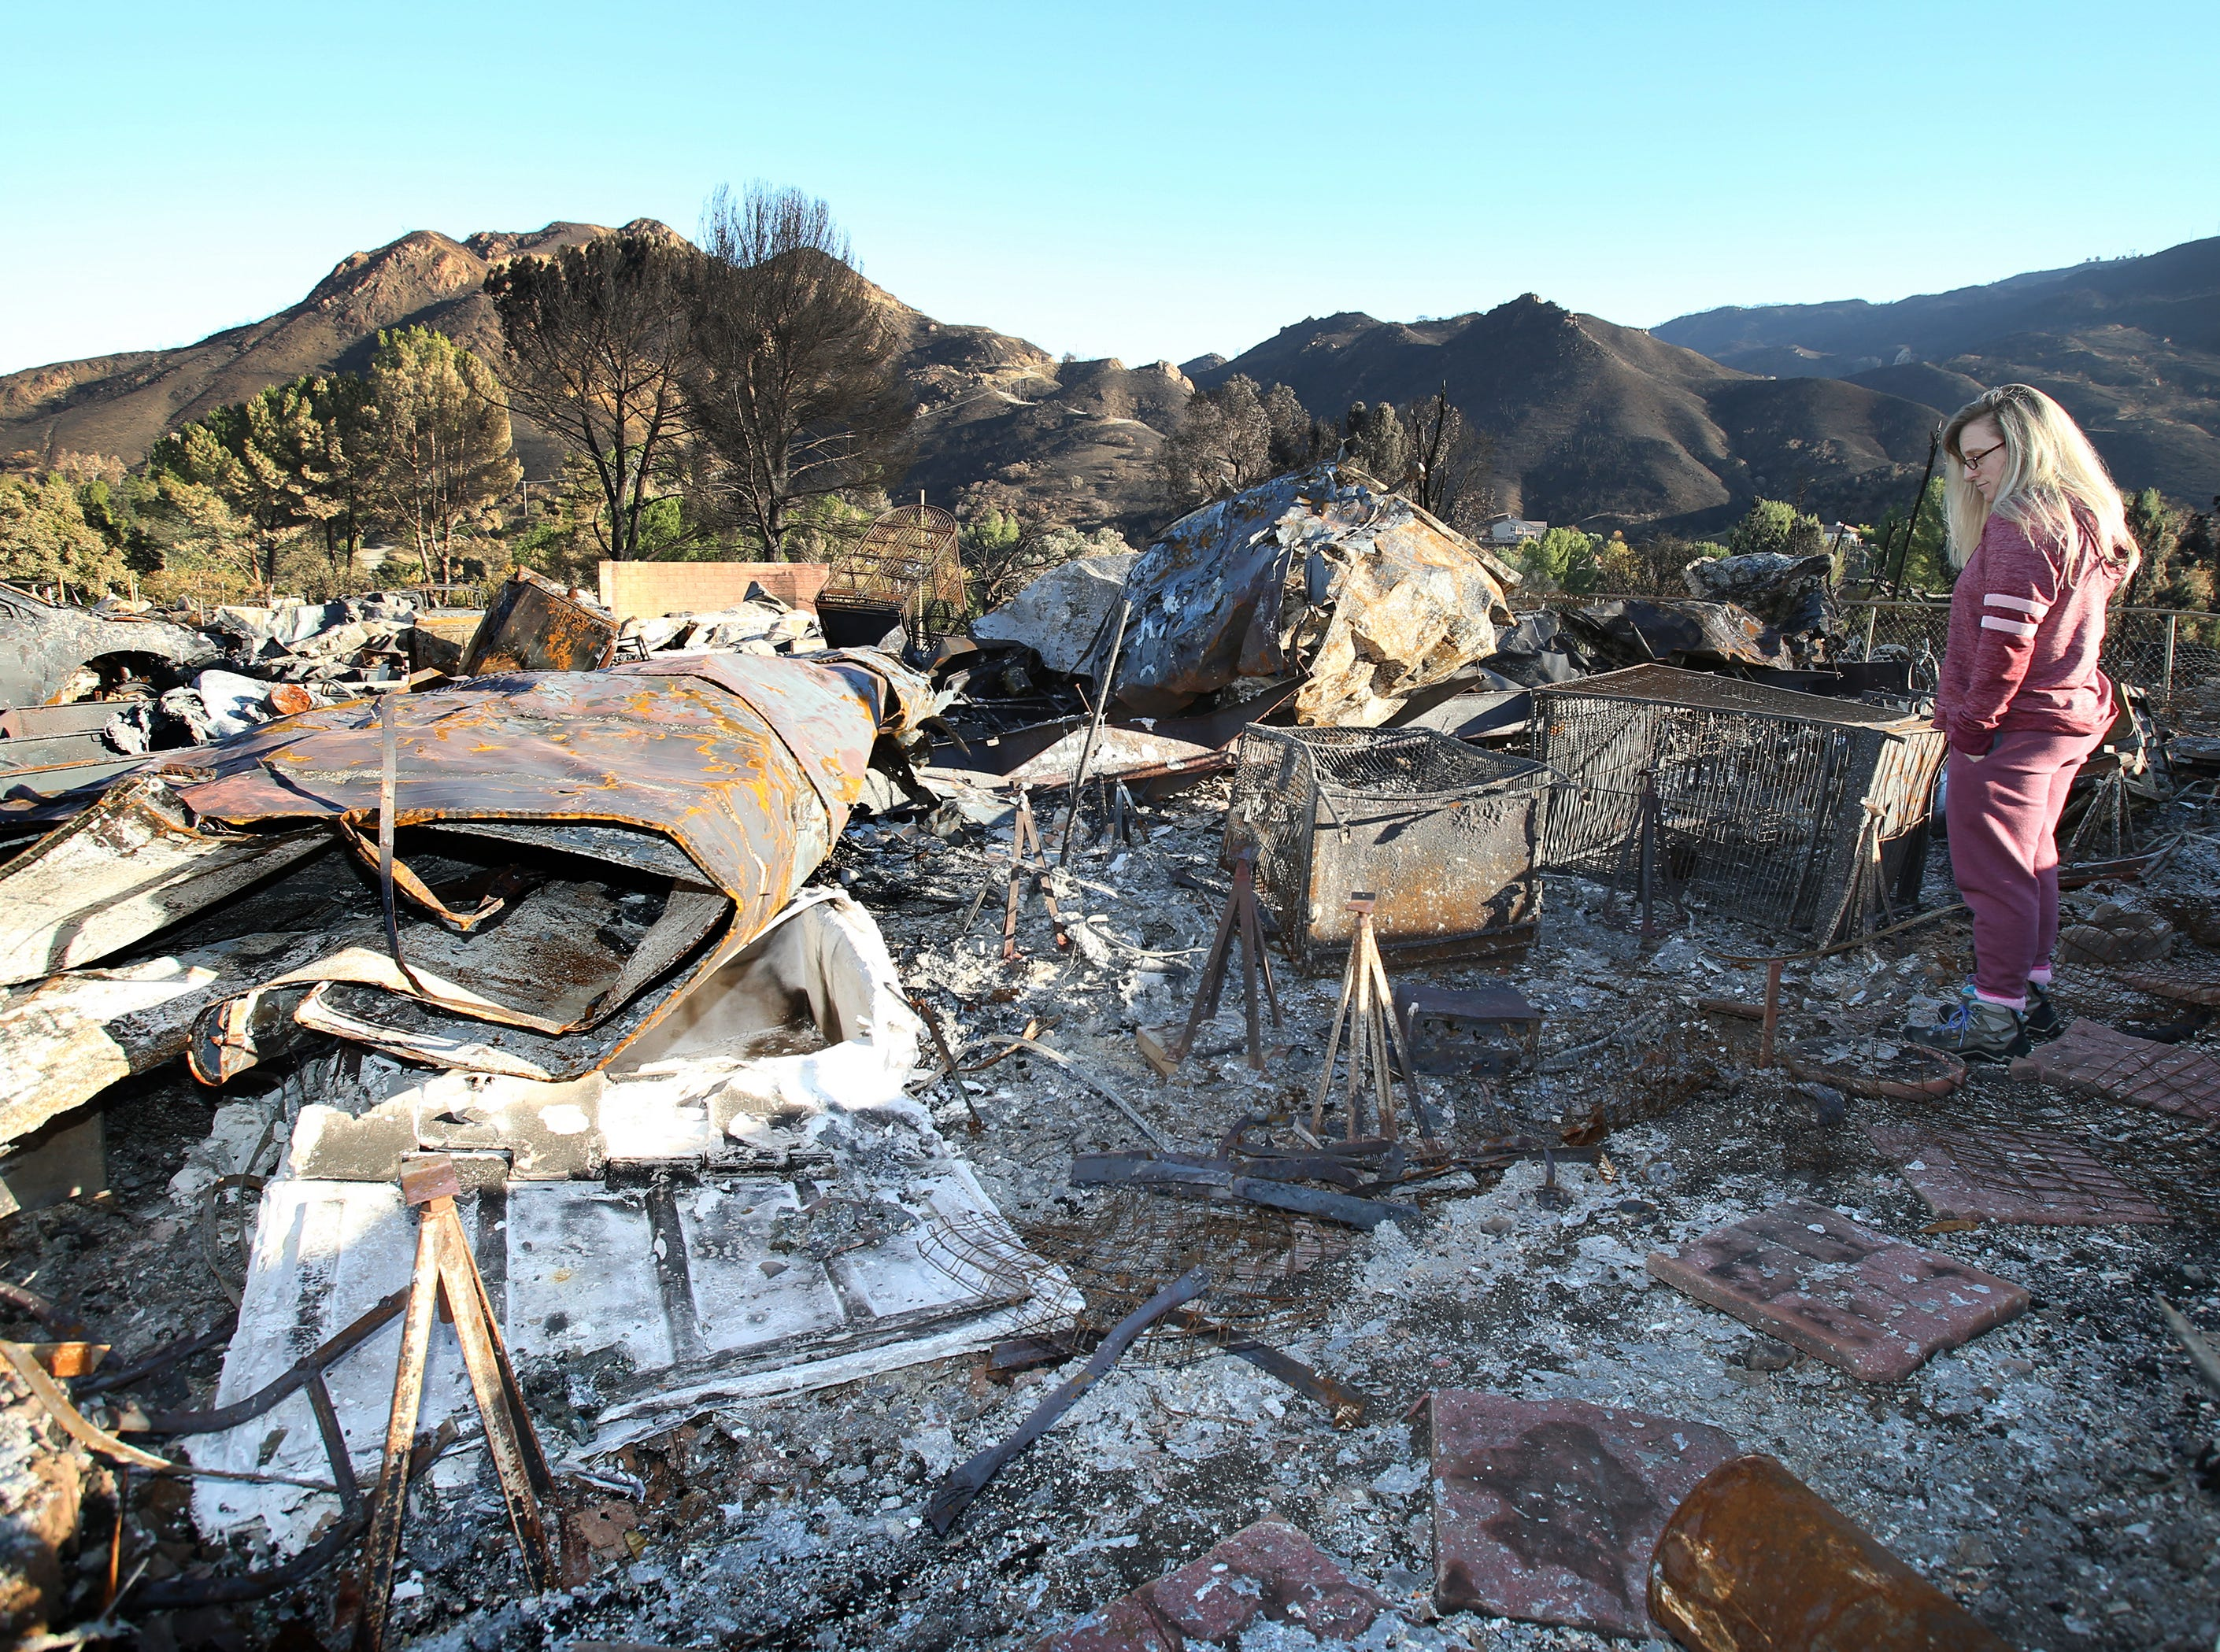 Rosanna DeVere looks out at what remains of her home, which was destroyed during the Woolsey Fire. In front of her are her two large bird cages that housed her cockatoo and cockatiel, which she did get out before the fire hit her property in the Seminole Springs Mobile Home Park in Agoura Hills.